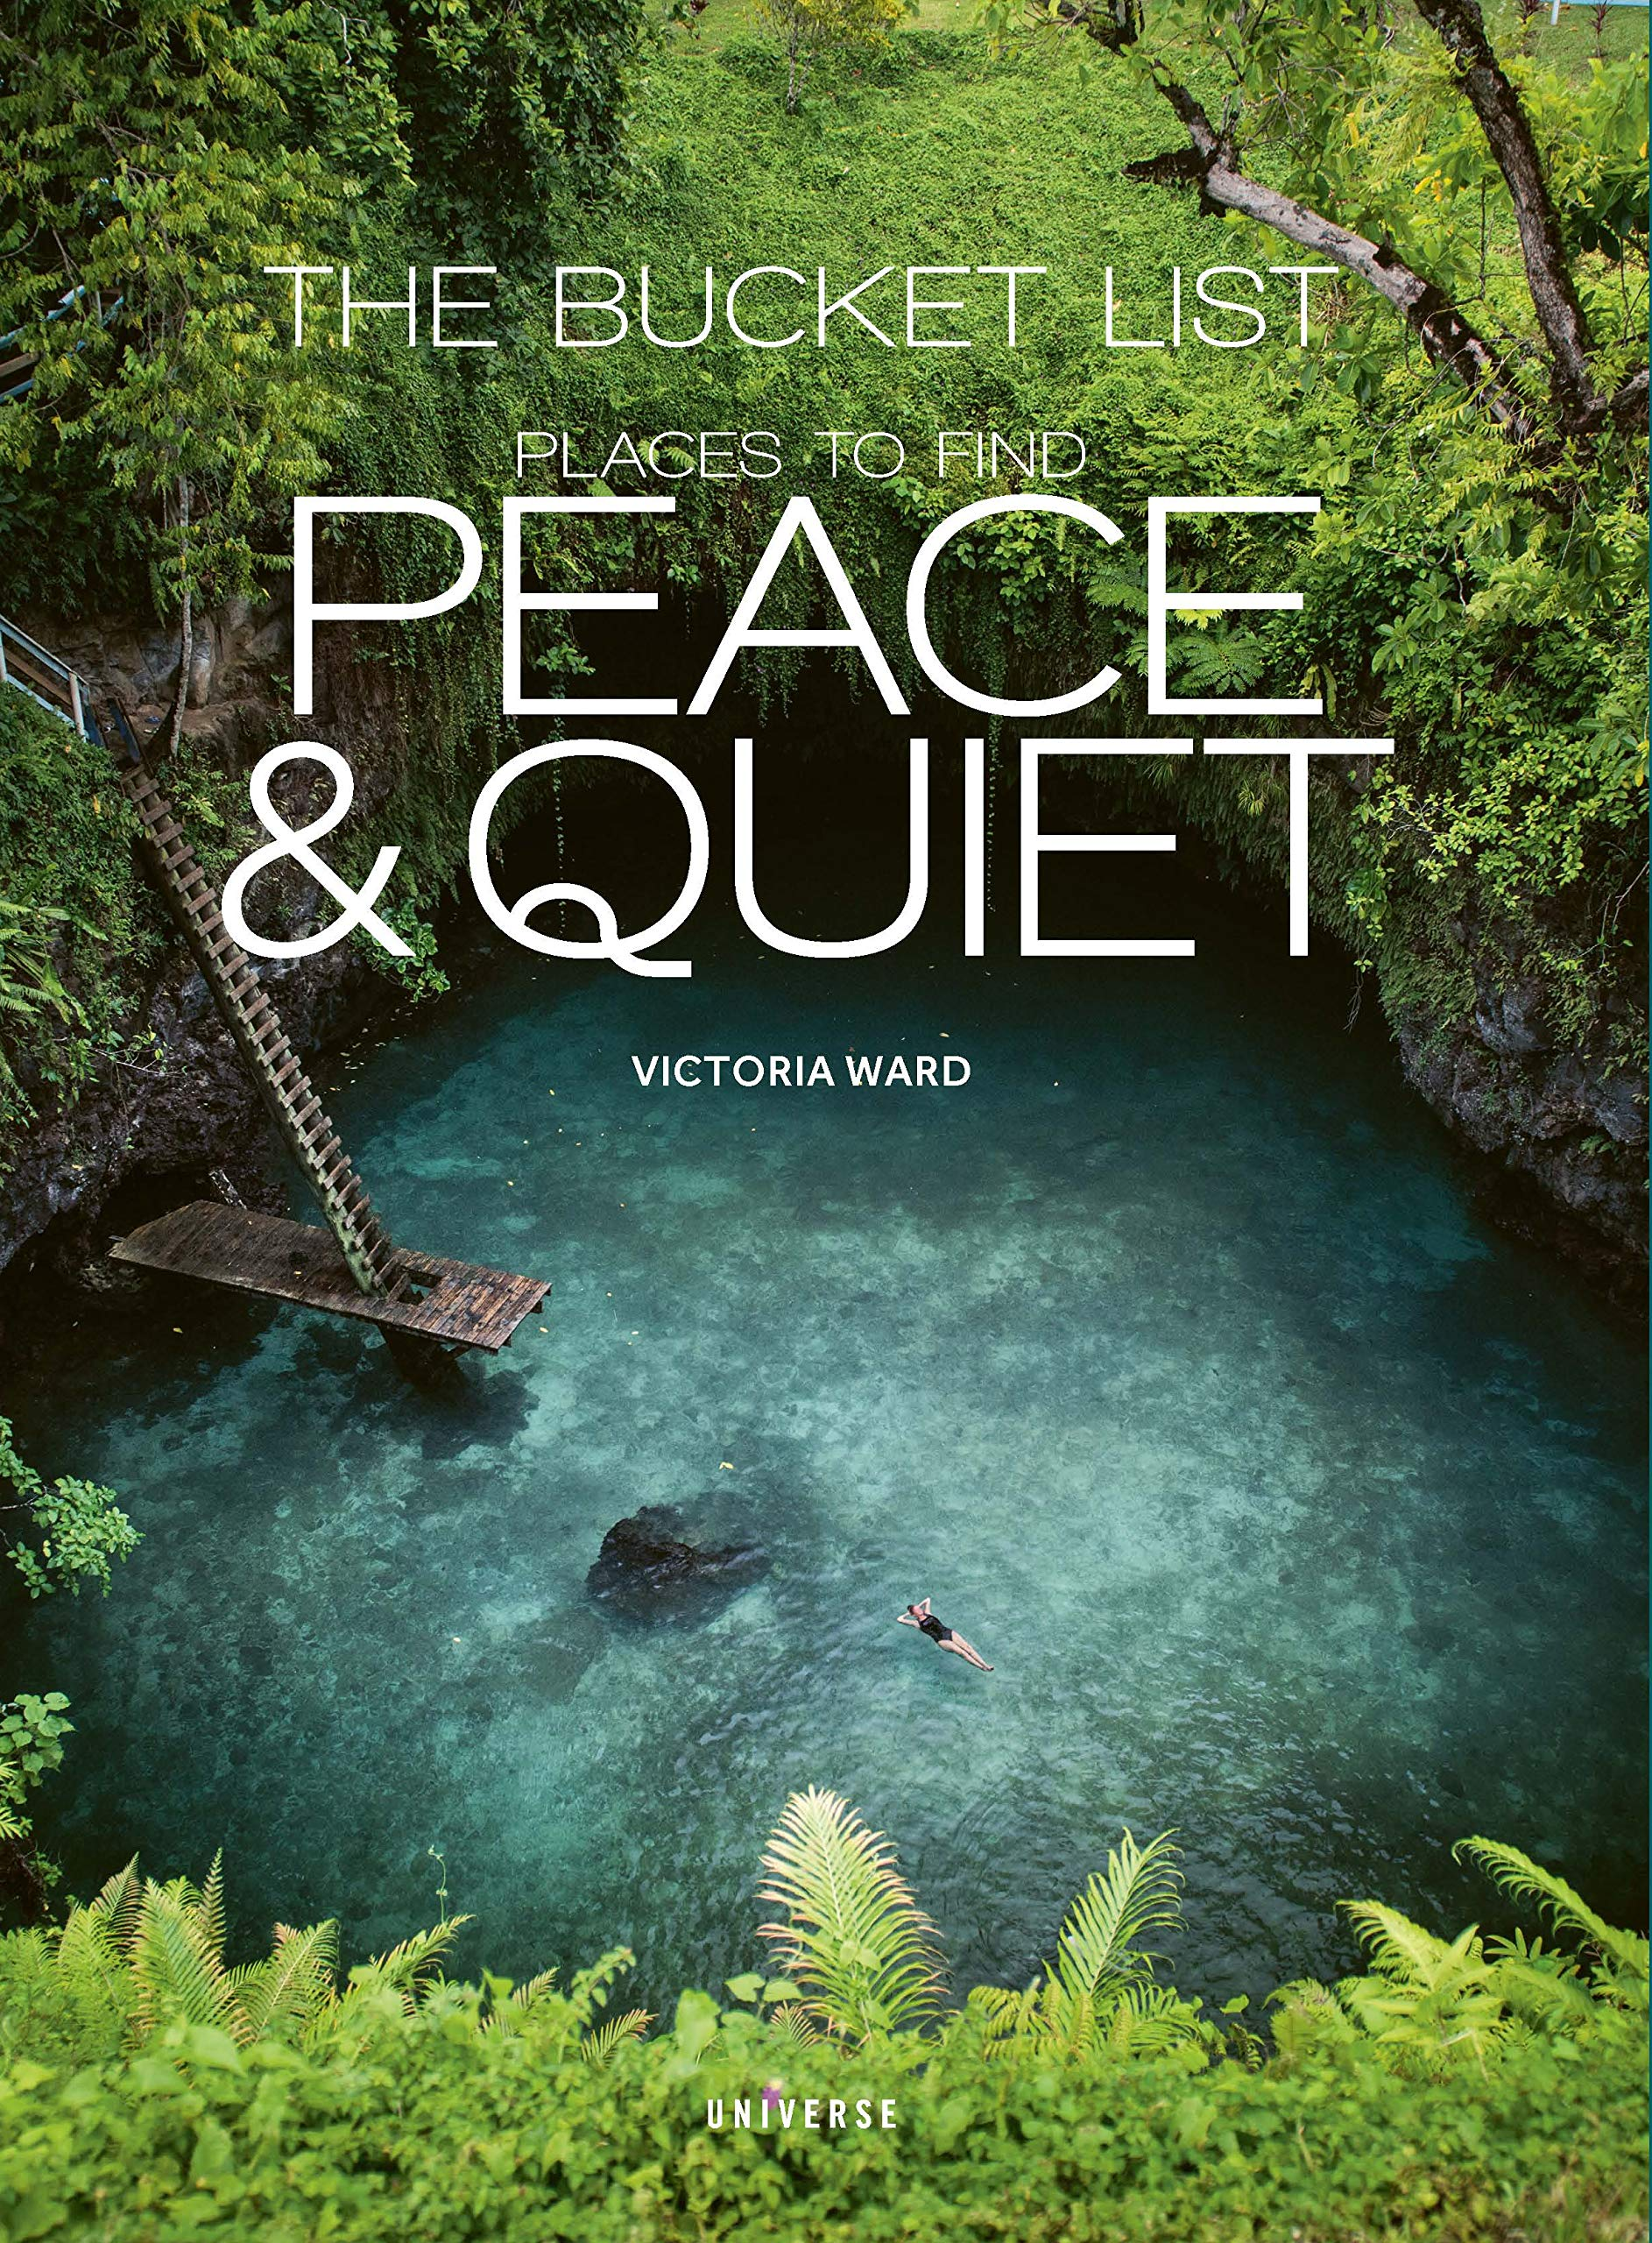 The Bucket List Places to Find Peace & Quiet